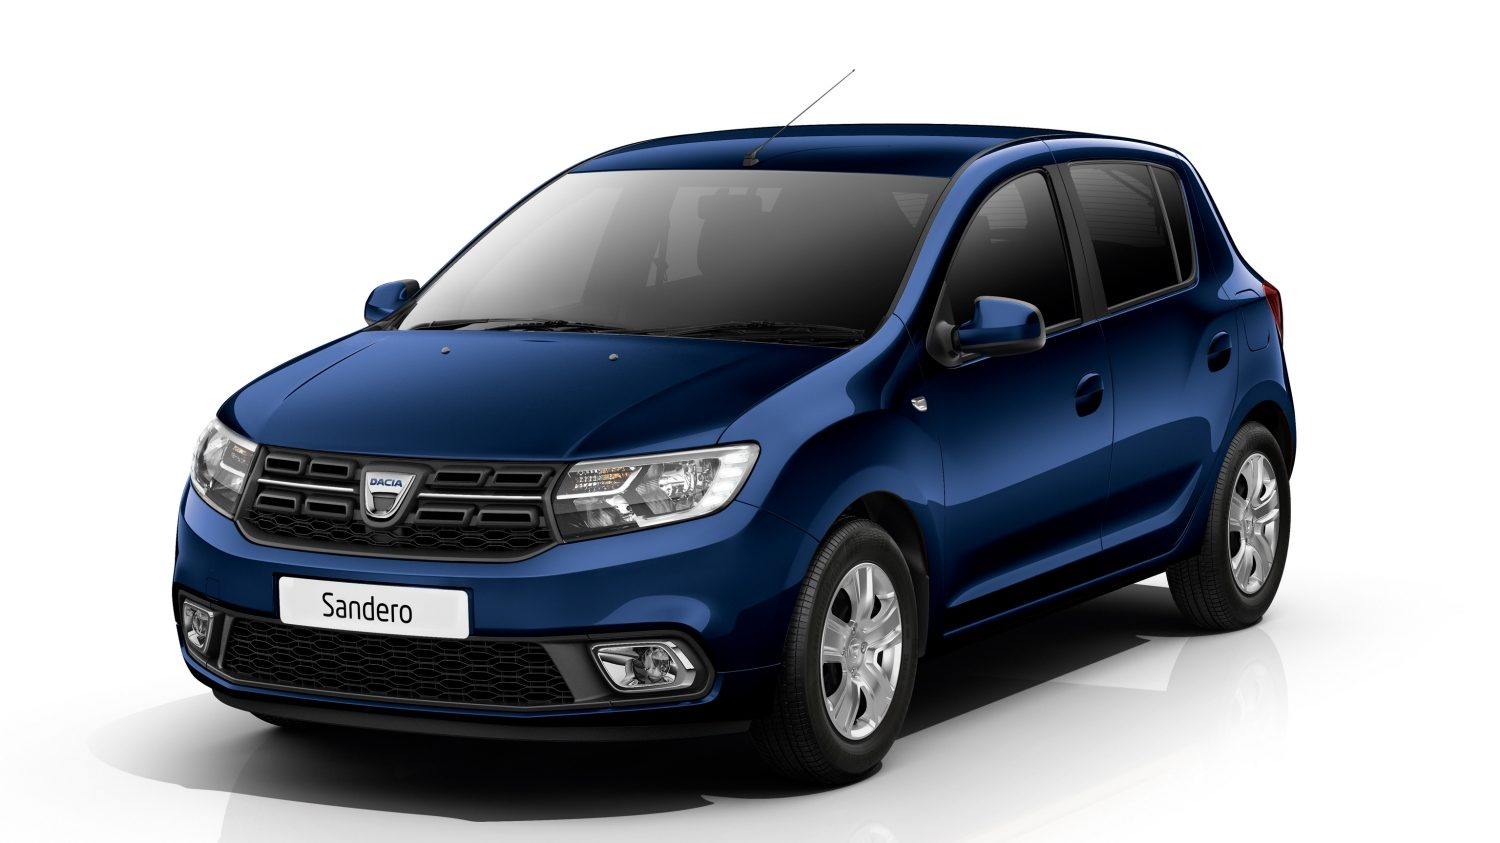 dacia sandero gpl avis l 39 avis propri taire du jour vieuxmachin nous parle de sa dacia. Black Bedroom Furniture Sets. Home Design Ideas